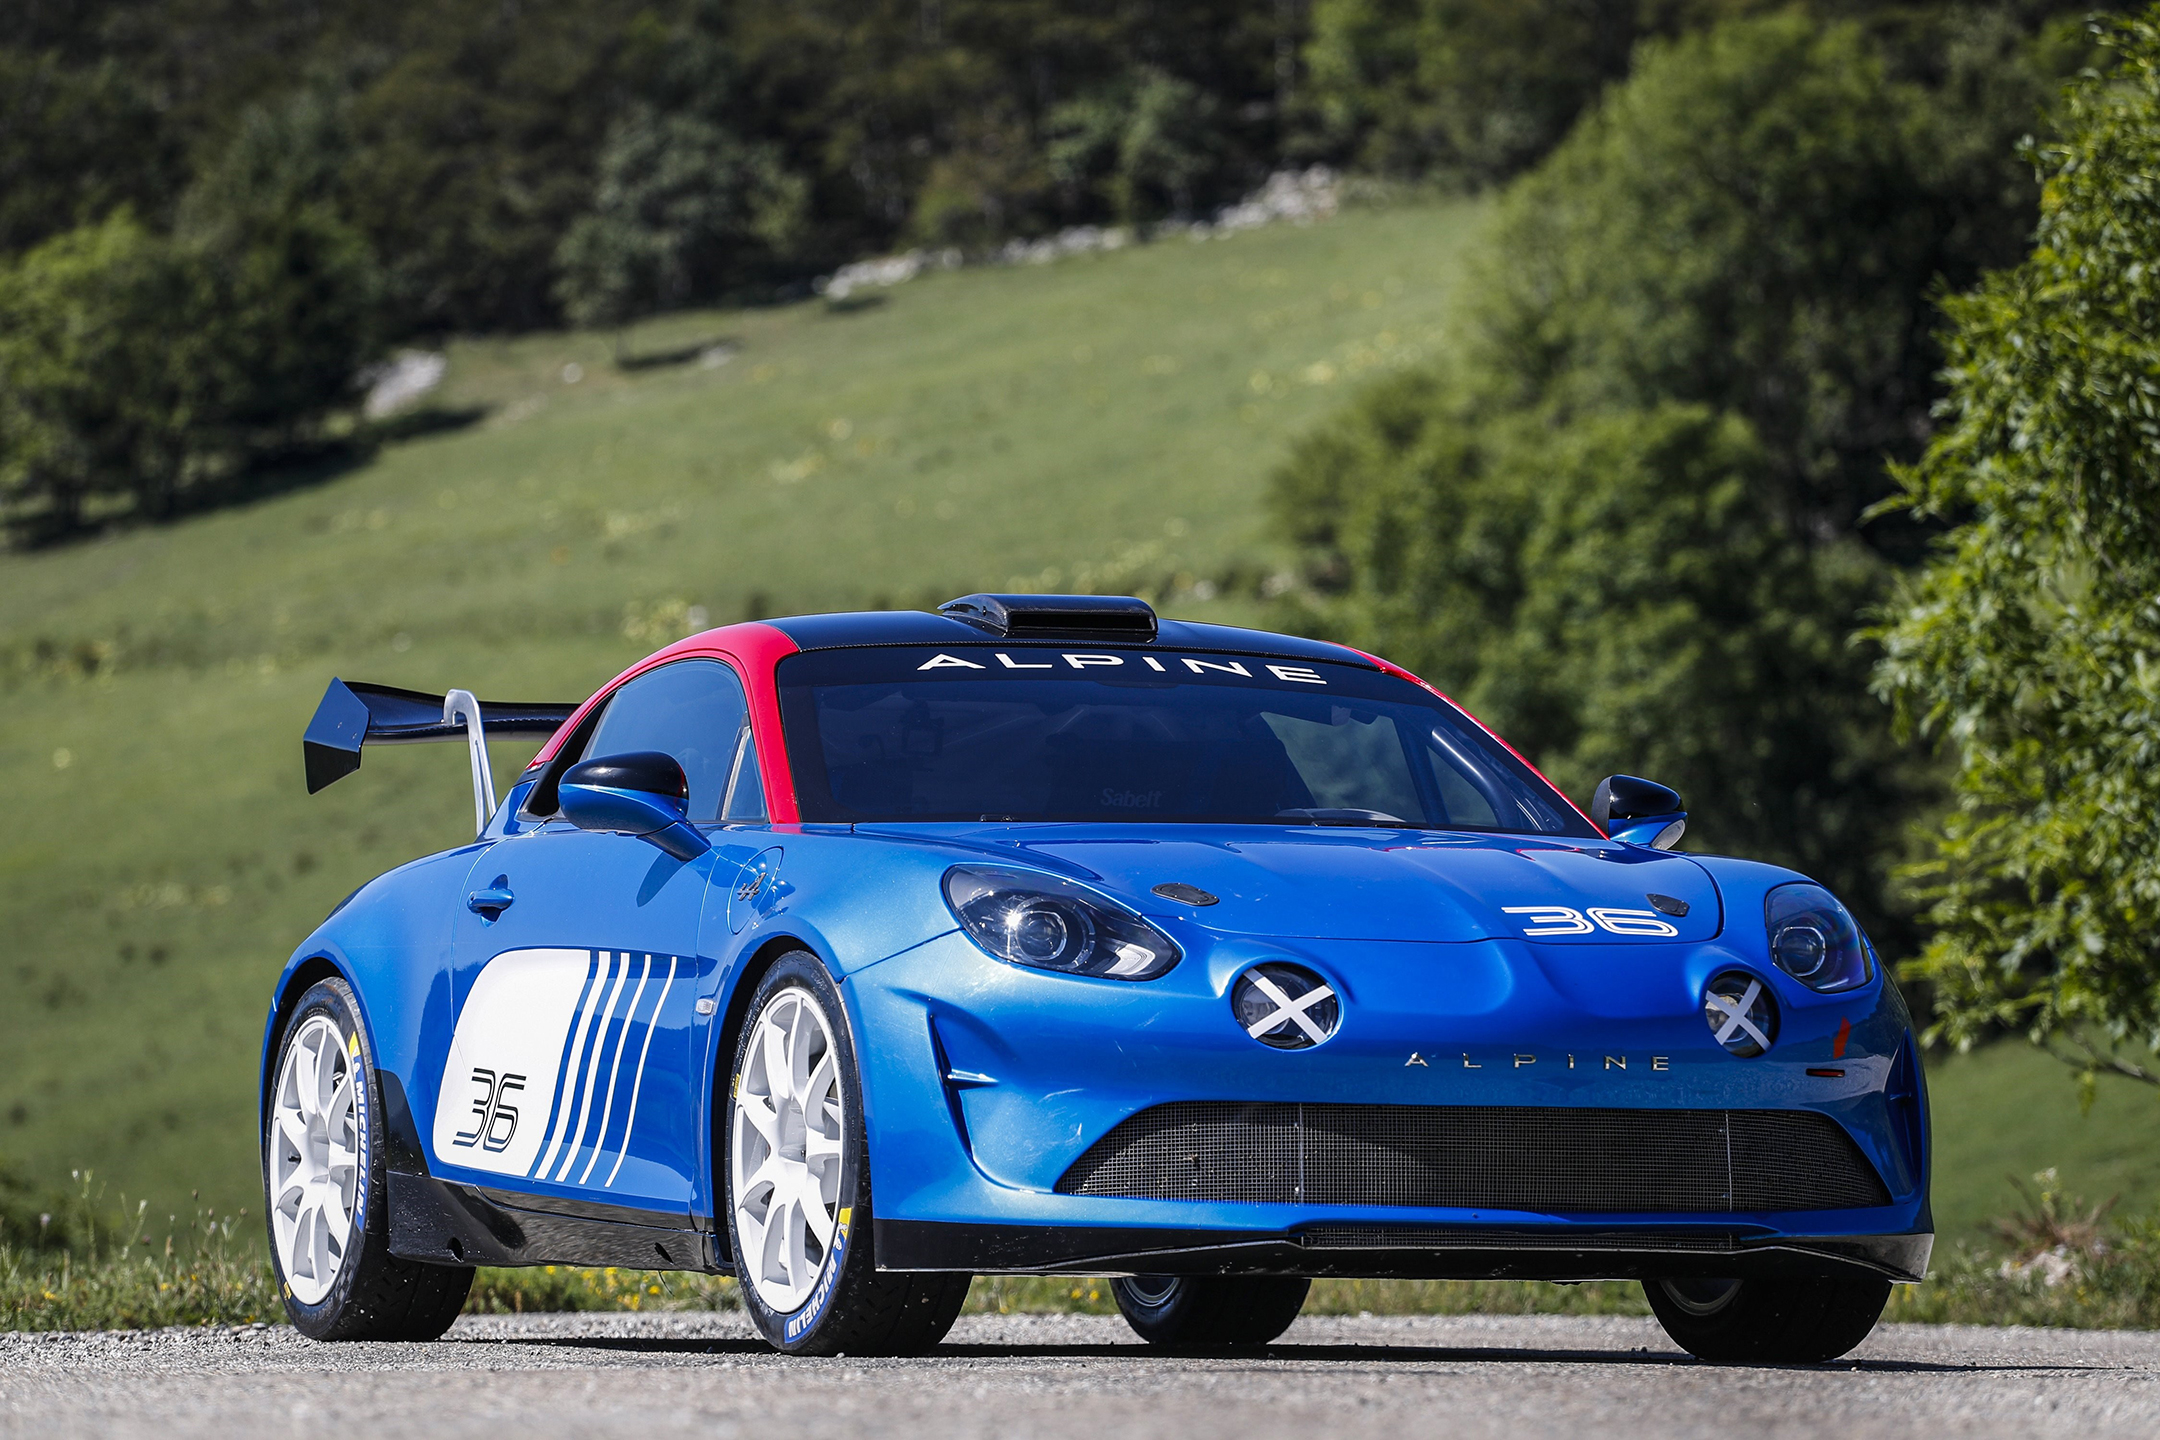 Alpine A110 Rally - 2019 - front side-face / profil avant